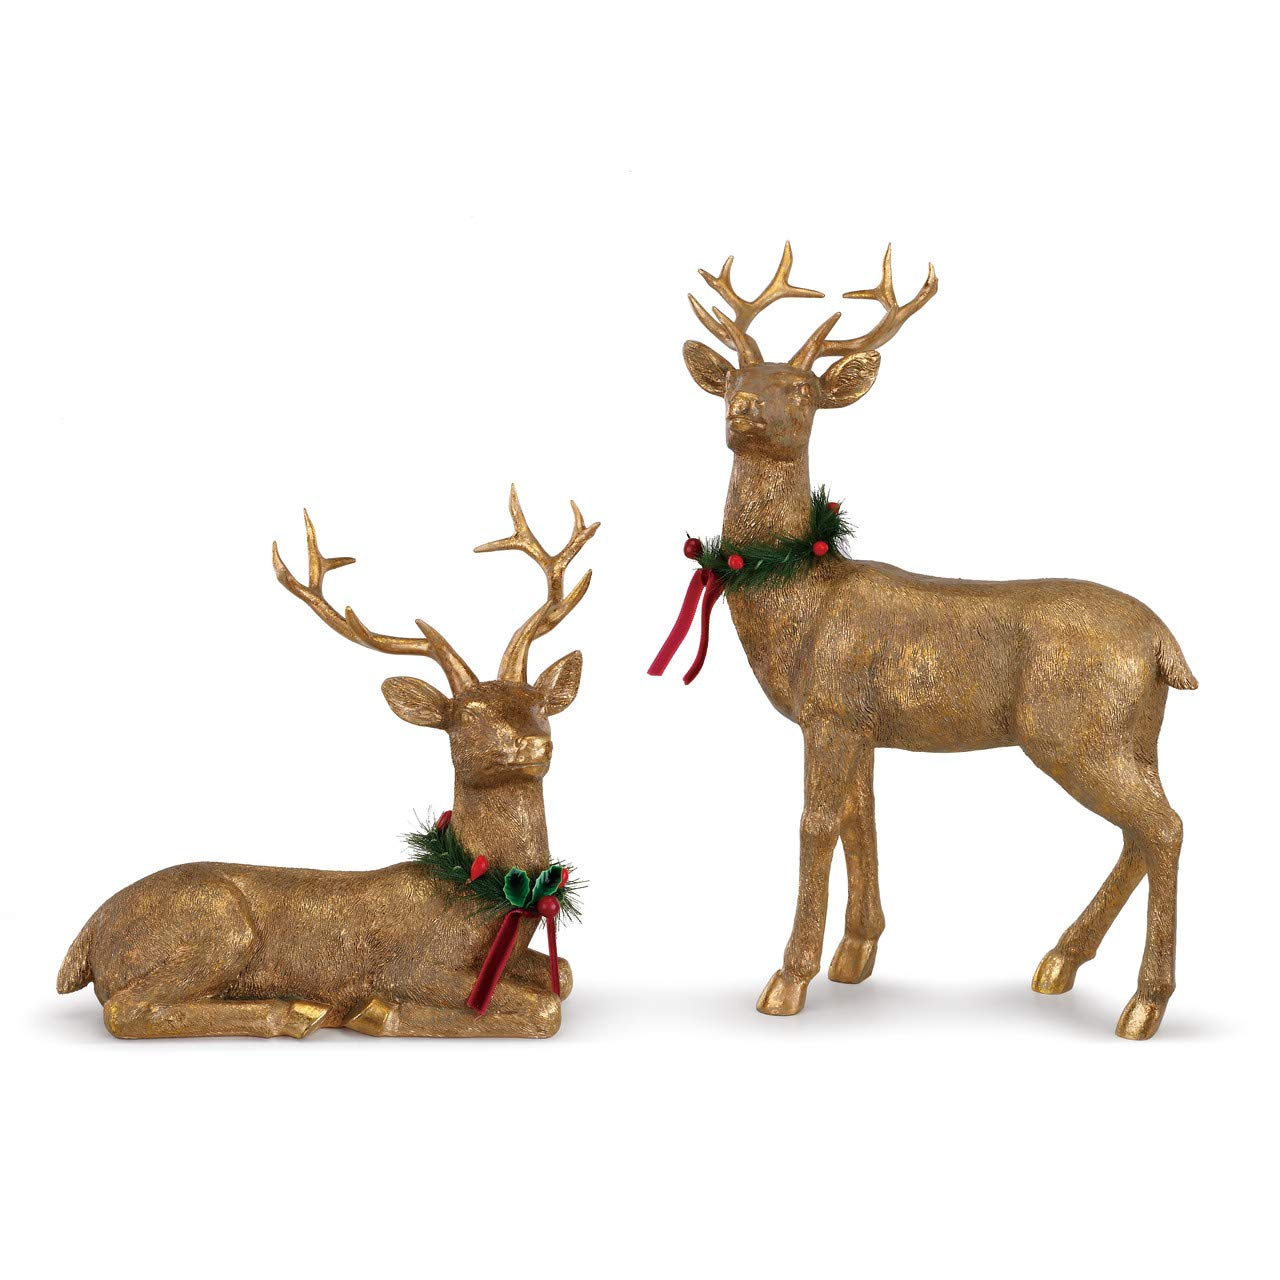 DEMDACO Goldtone Deer with Neck Wreaths 8 x 11 Inch Resin Christmas Figurines Assorted Set of 2